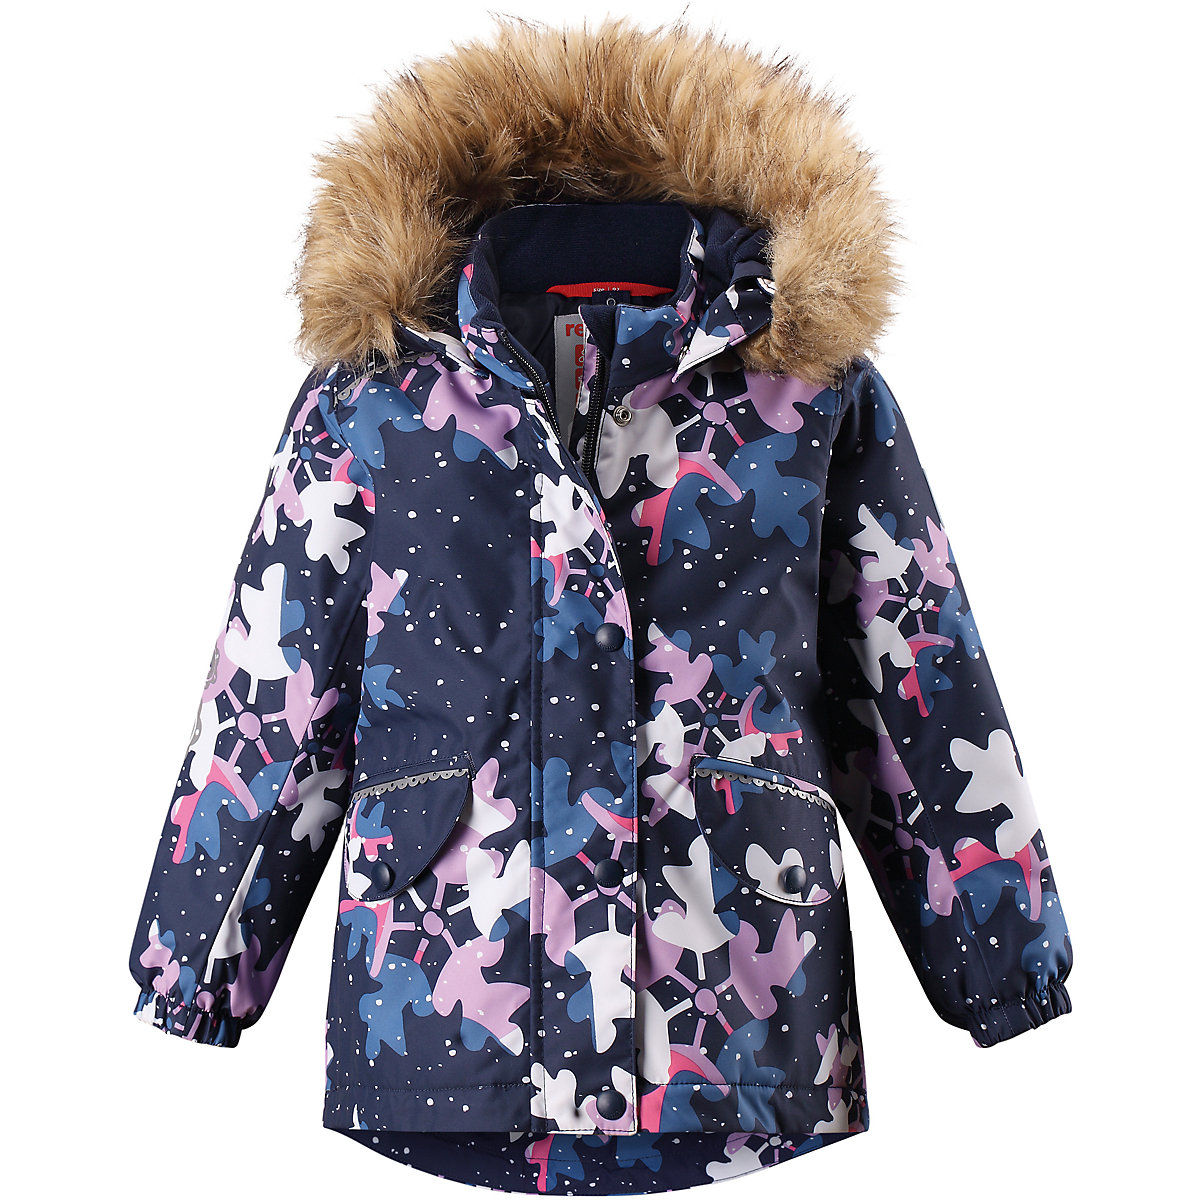 REIMA Jackets & Coats 8689427 for girls baby clothing winter warm boy girl jacket Polyester arsuxeo thermal cycling jacket winter warm up bicycle clothing windproof waterproof breathable pockets mtb bike jersey 15 k